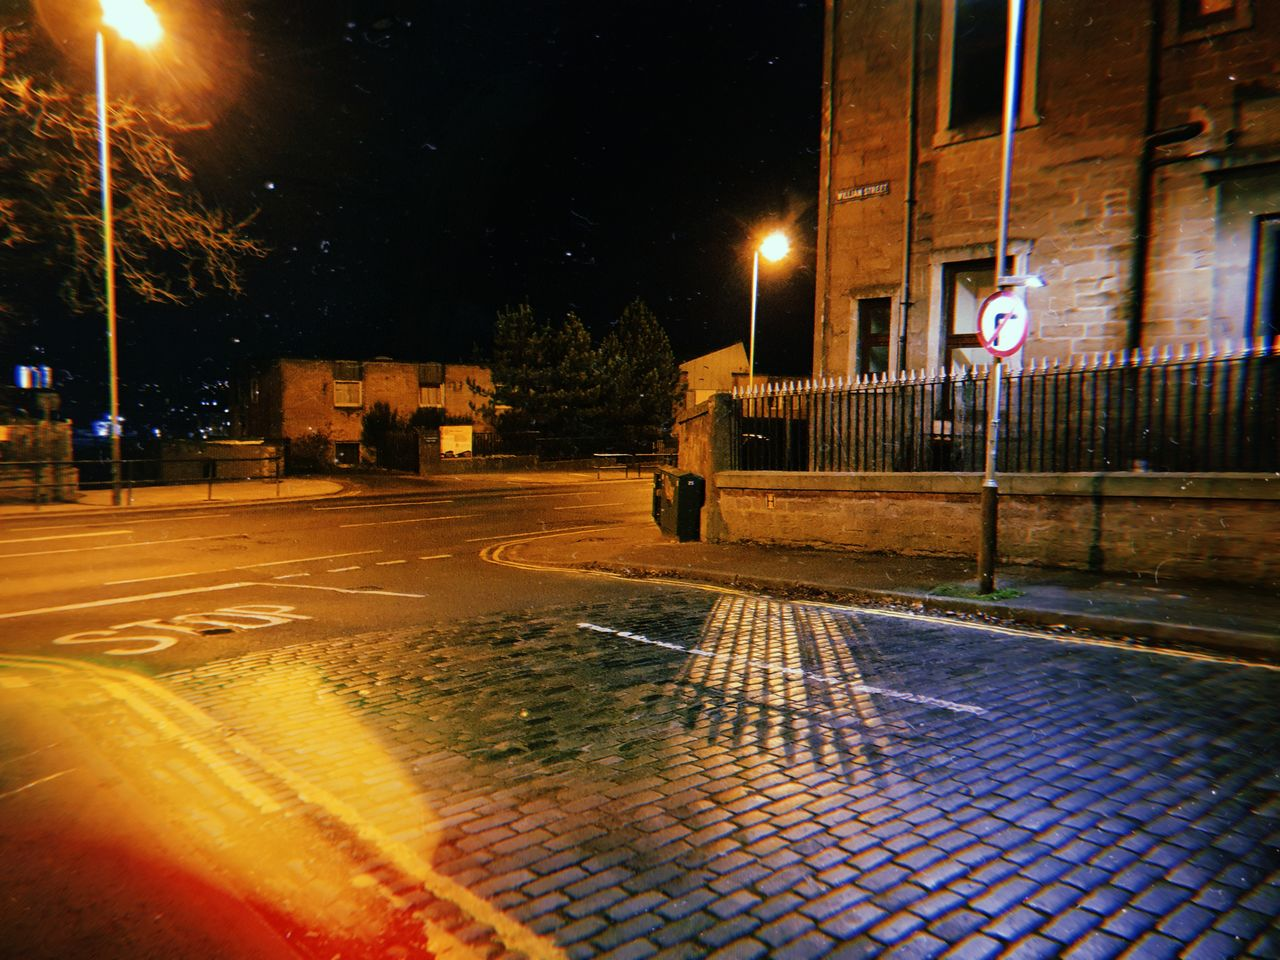 A dark street in Dundee at night. The road is cobbled and the streetlight lights up part of it with the rest in darkness.